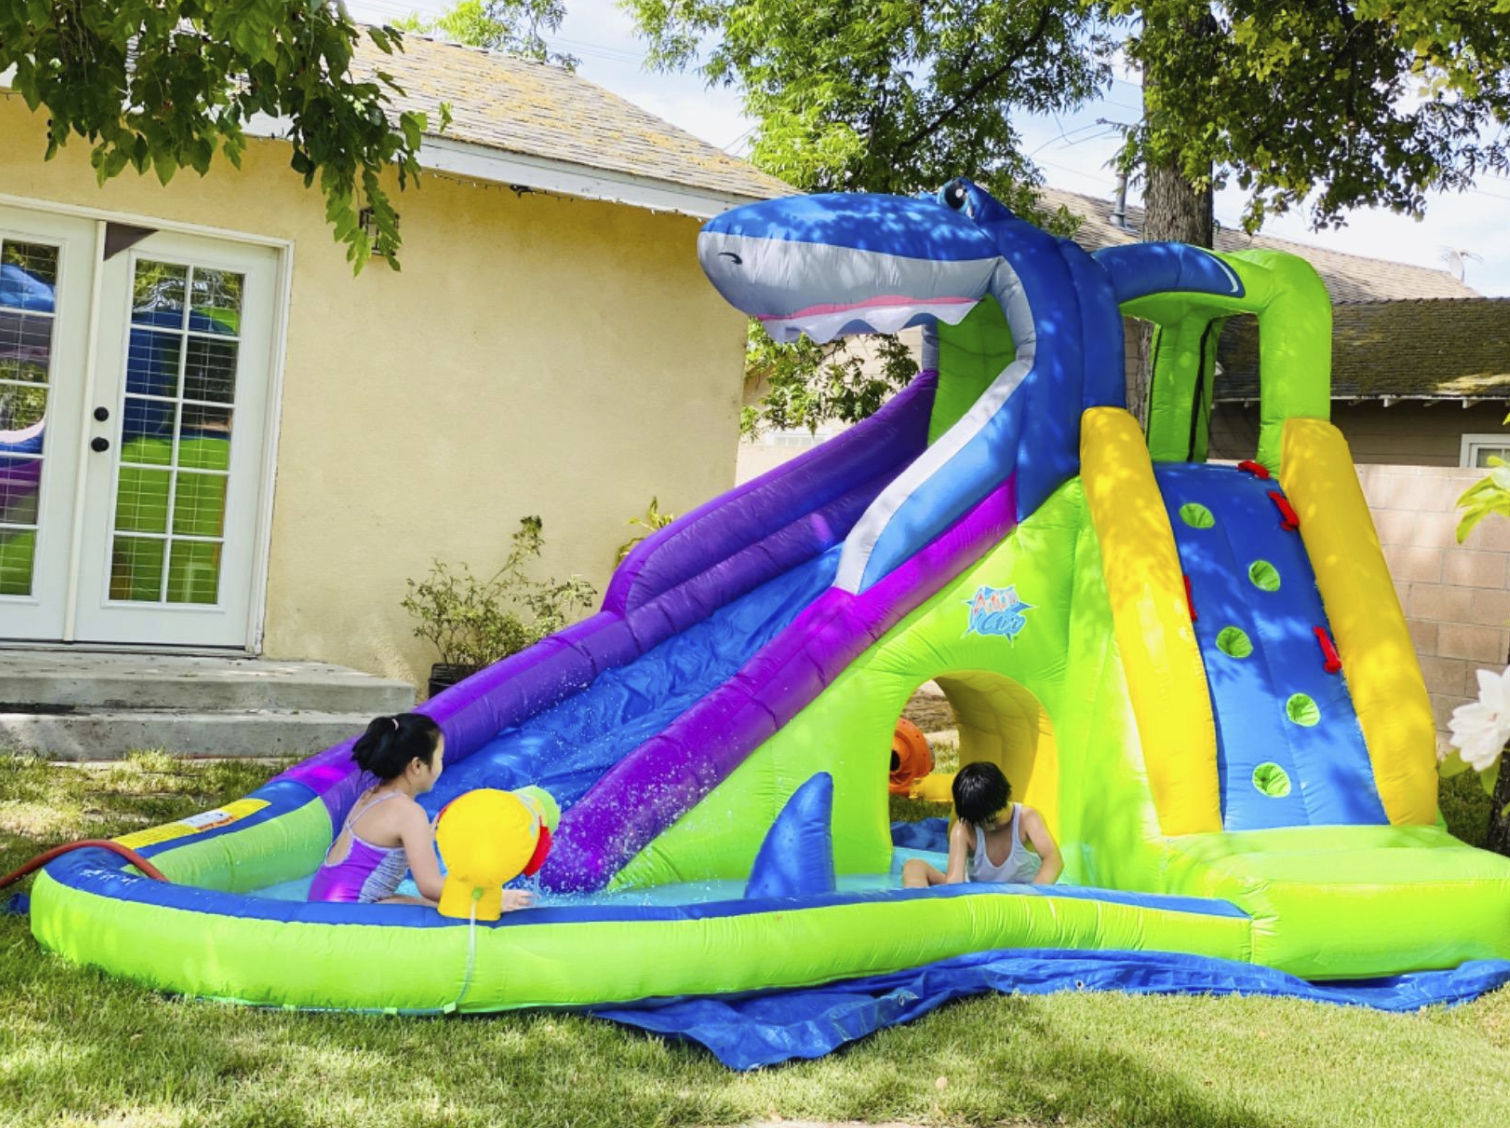 the blow-up slide with has a shark mouth at the top of the slide and a climbing slide on the side with foot rungs for climbing. Both slides have a small sitting area. The two slides are also connected by an open tunnel to crawl through.